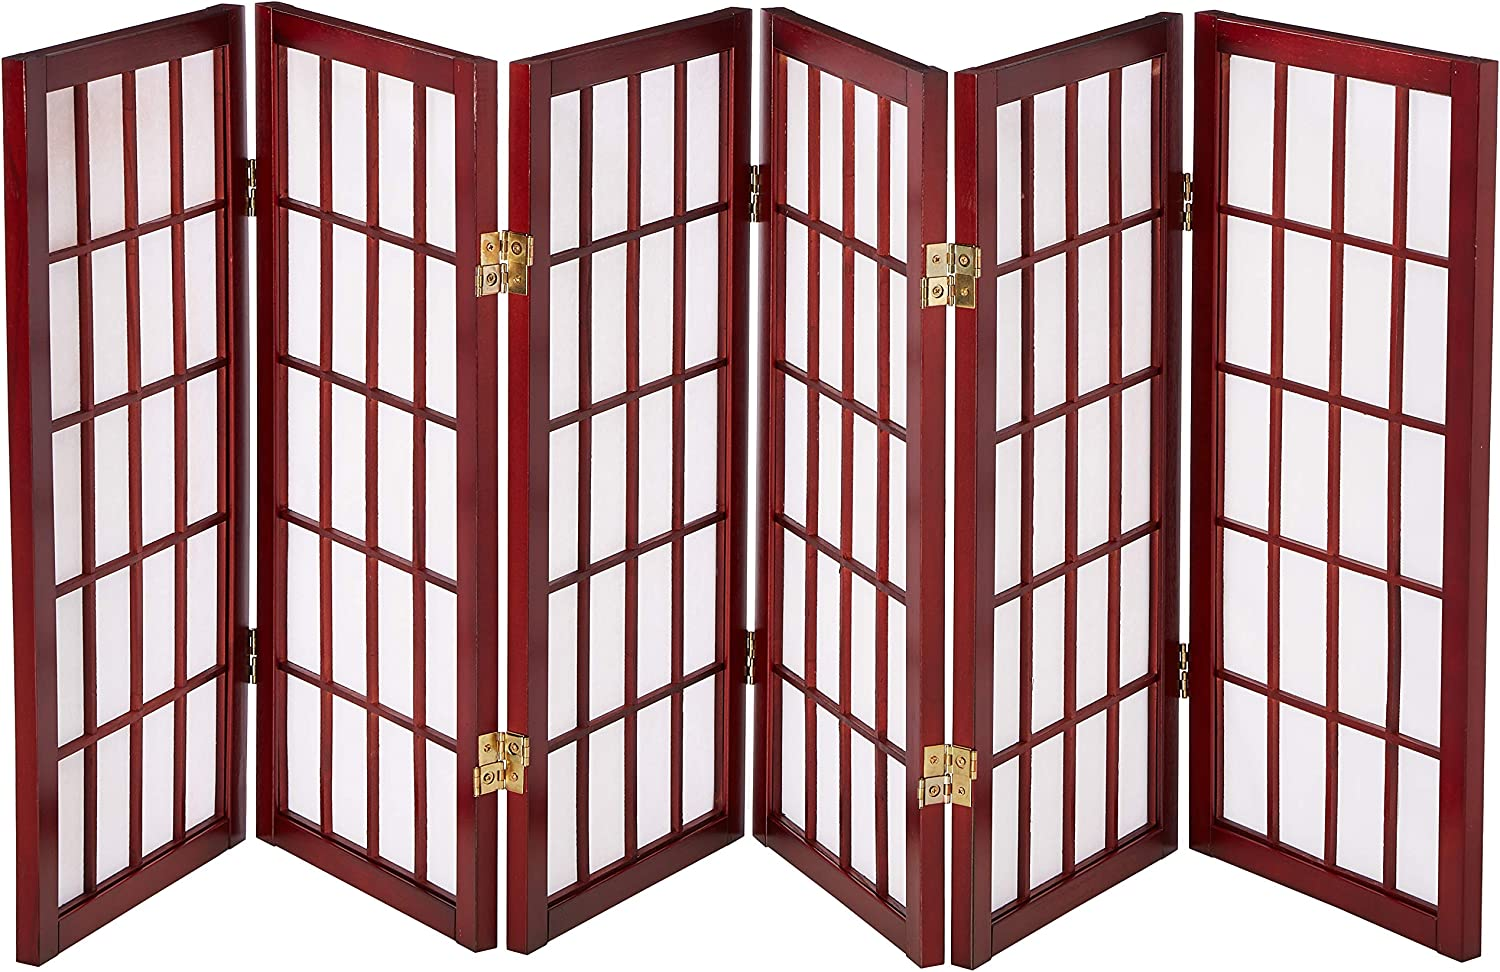 Oriental Furniture 2 ft. Tall Desktop Window Pane Shoji Screen - Rosewood - 6 Panels